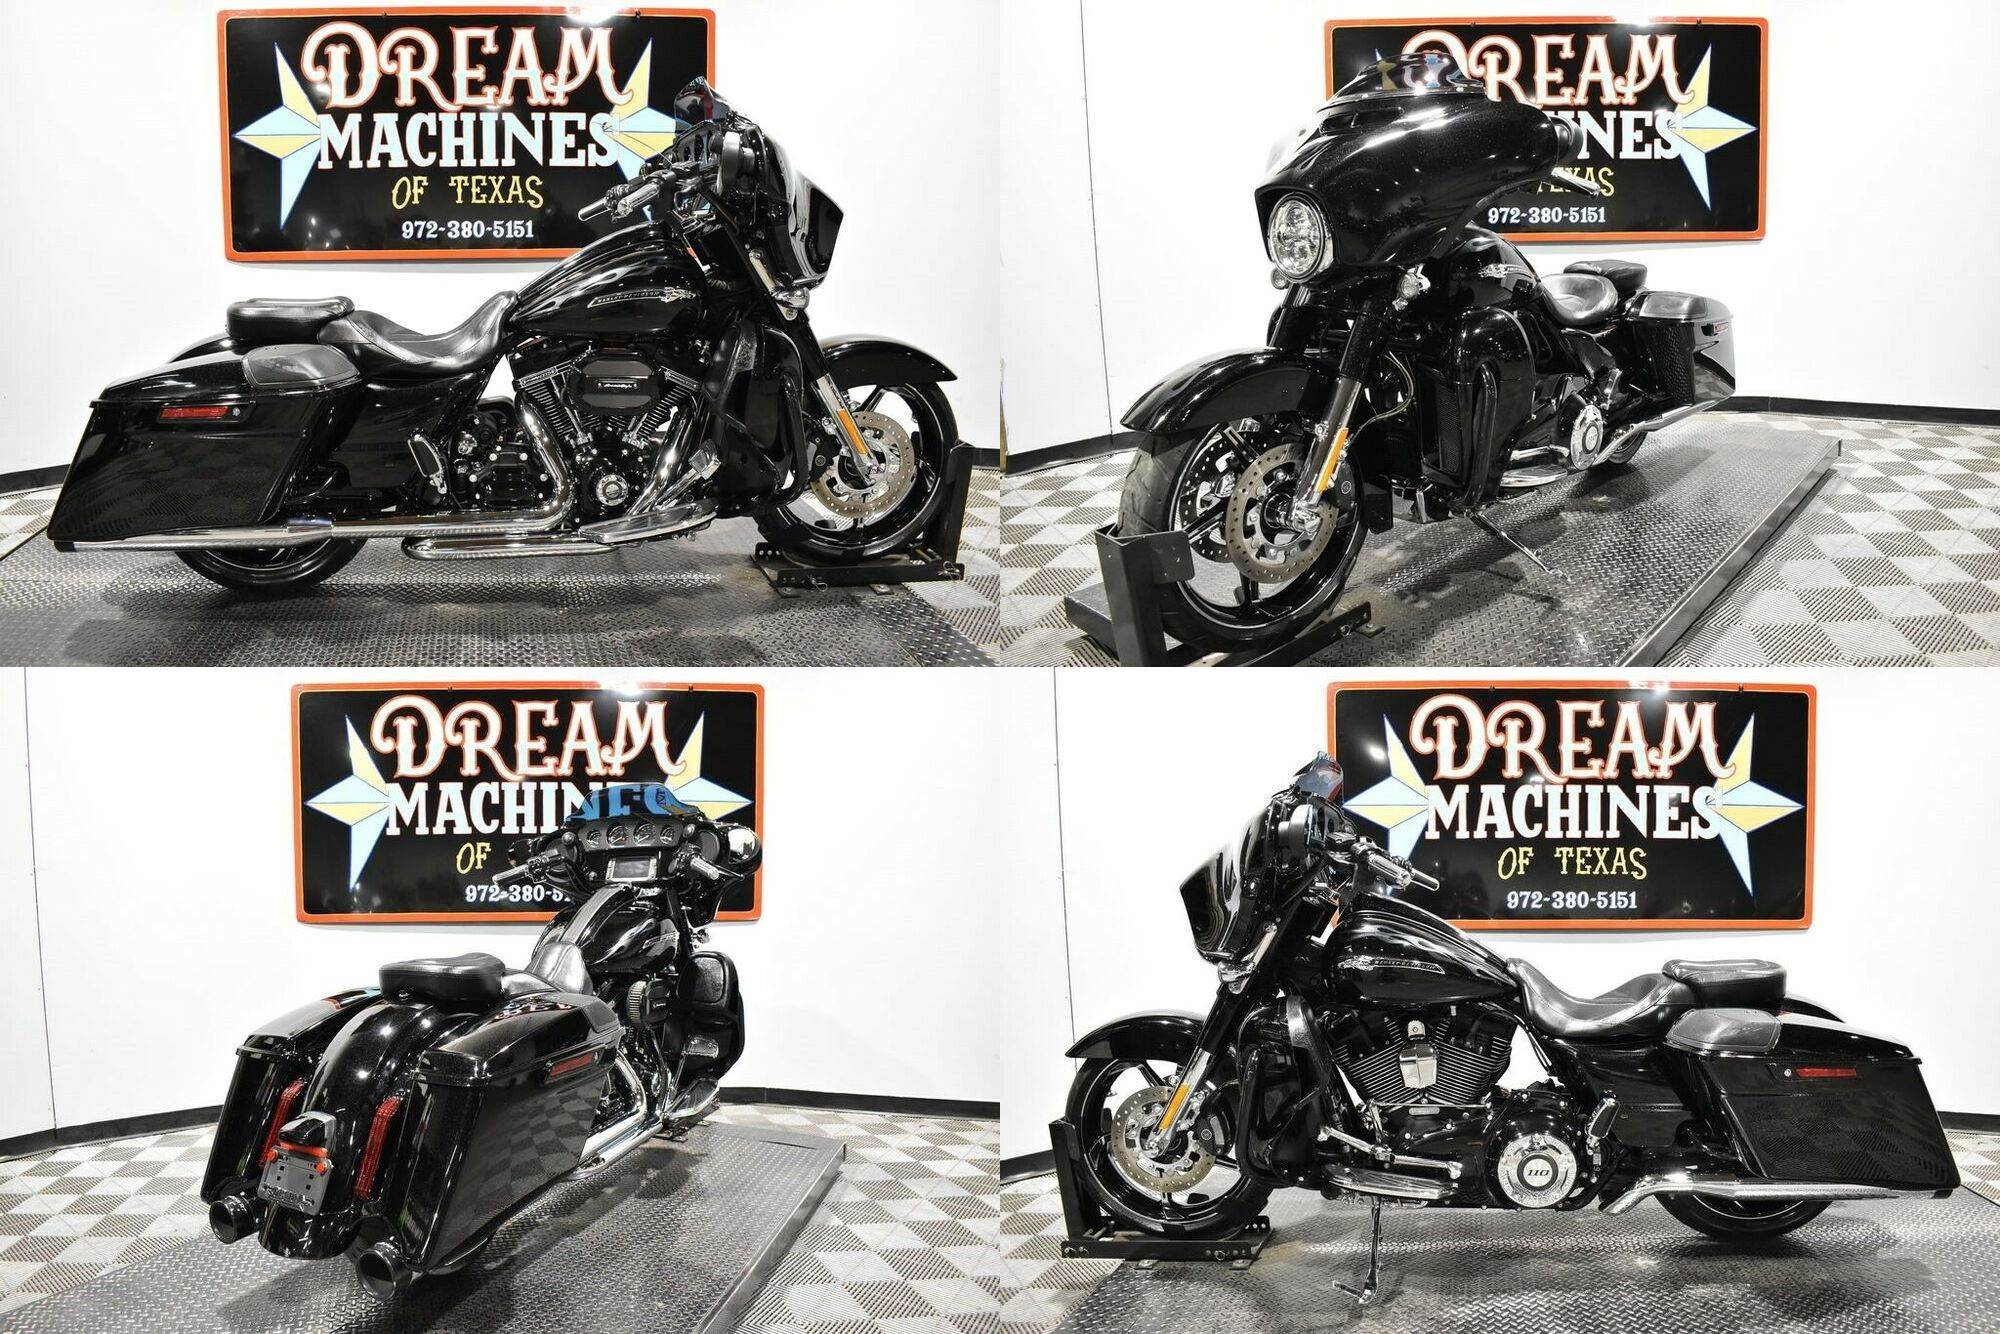 2016 Harley-Davidson FLHXSE - Screamin Eagle Street Glide CVO Carbon Crystal With Phantom Flames used for sale near me